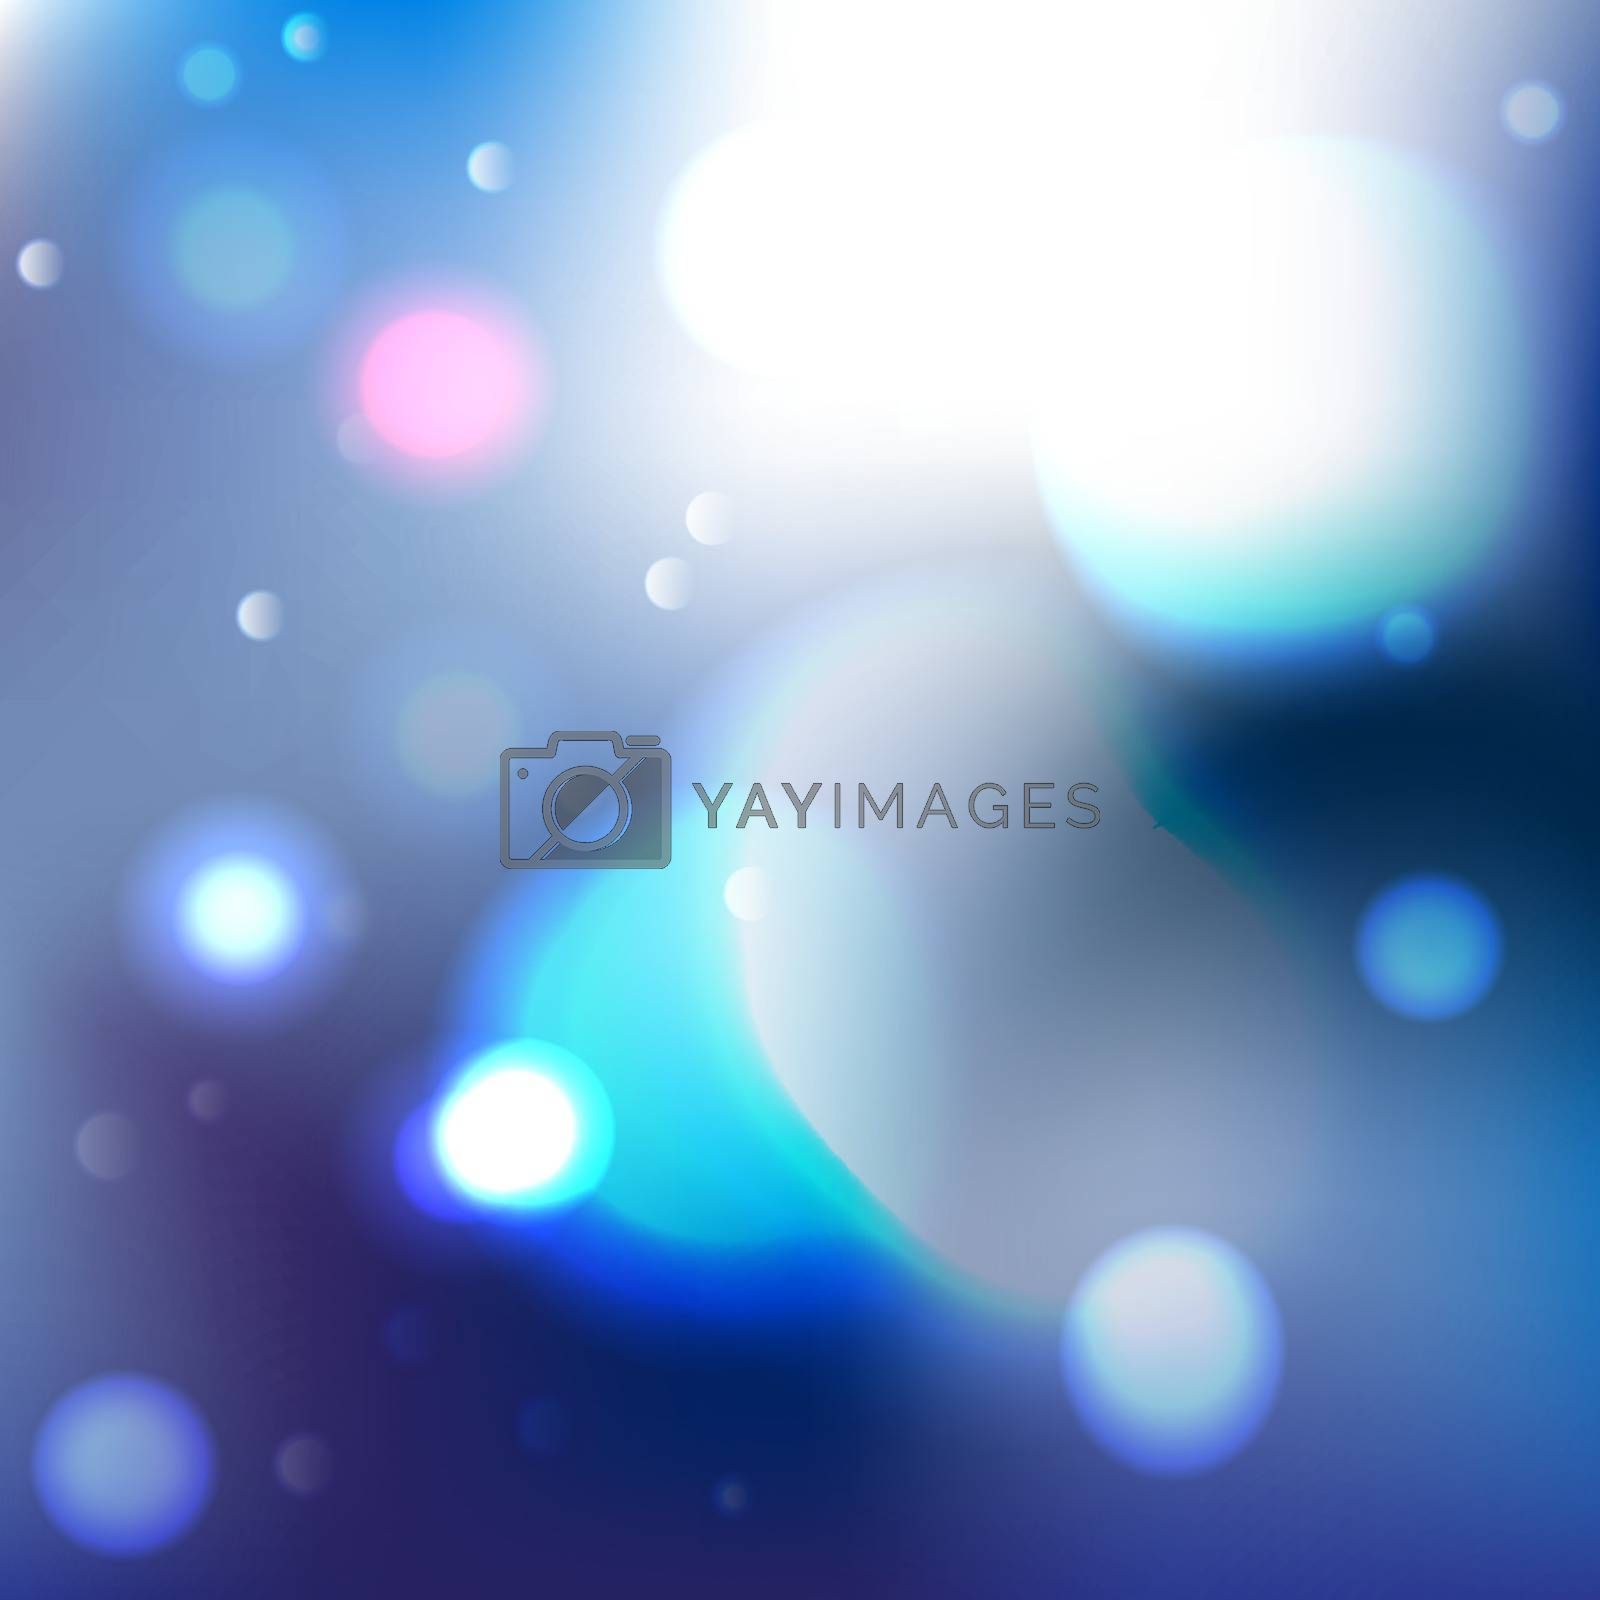 Vector with colorful abstract background.